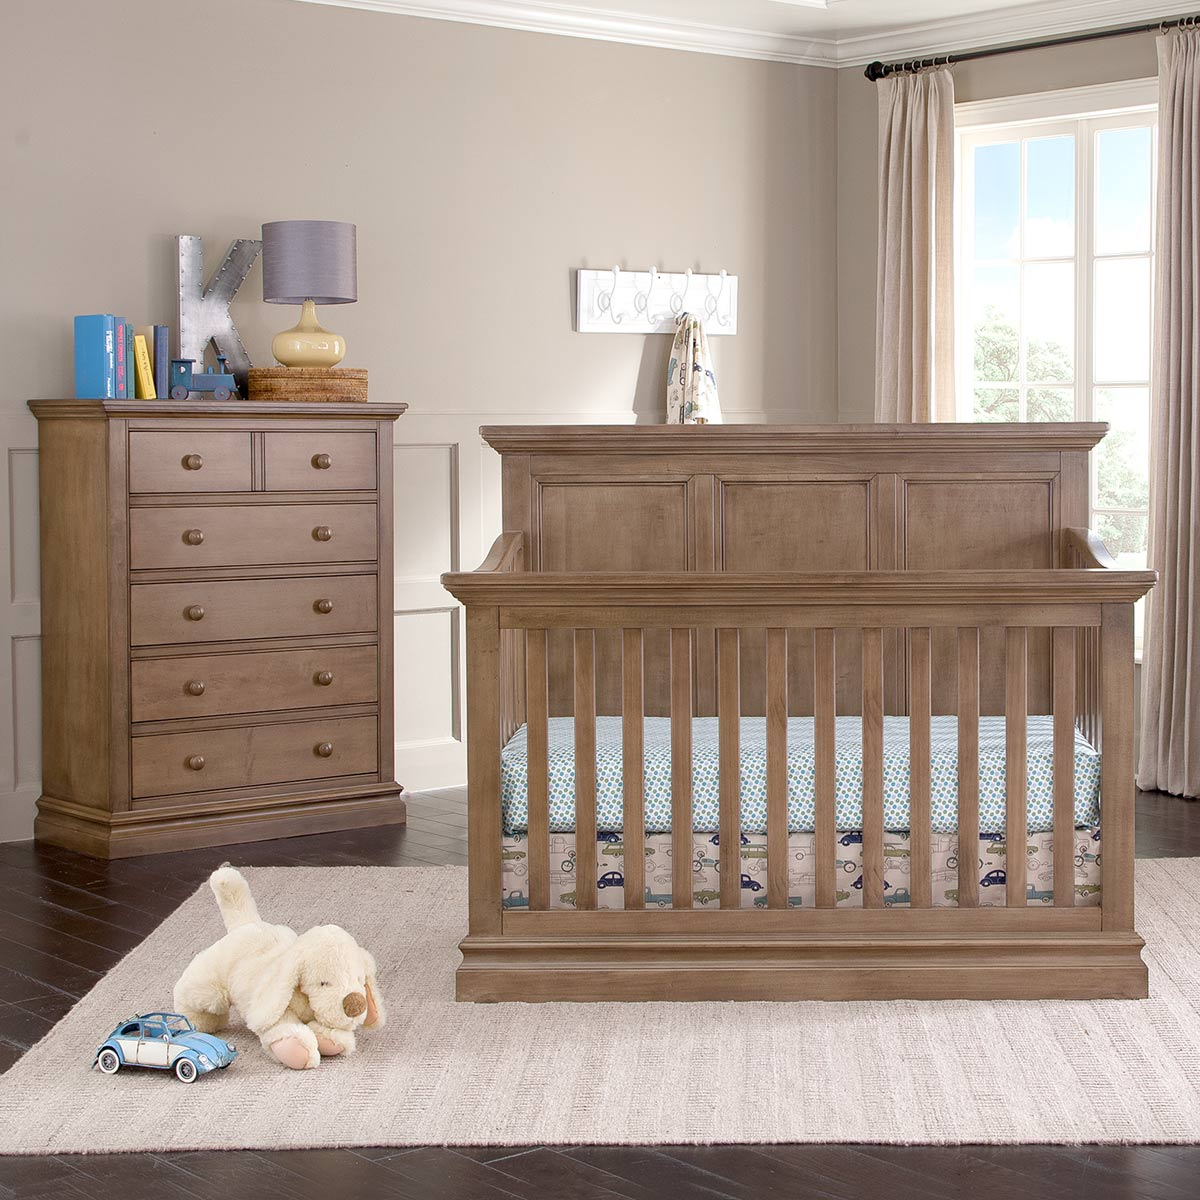 Westwood Design Pine Ridge 2 Piece Nursery Set   Convertible Panel Crib And  5 Drawer Chest In Cashew FREE SHIPPING